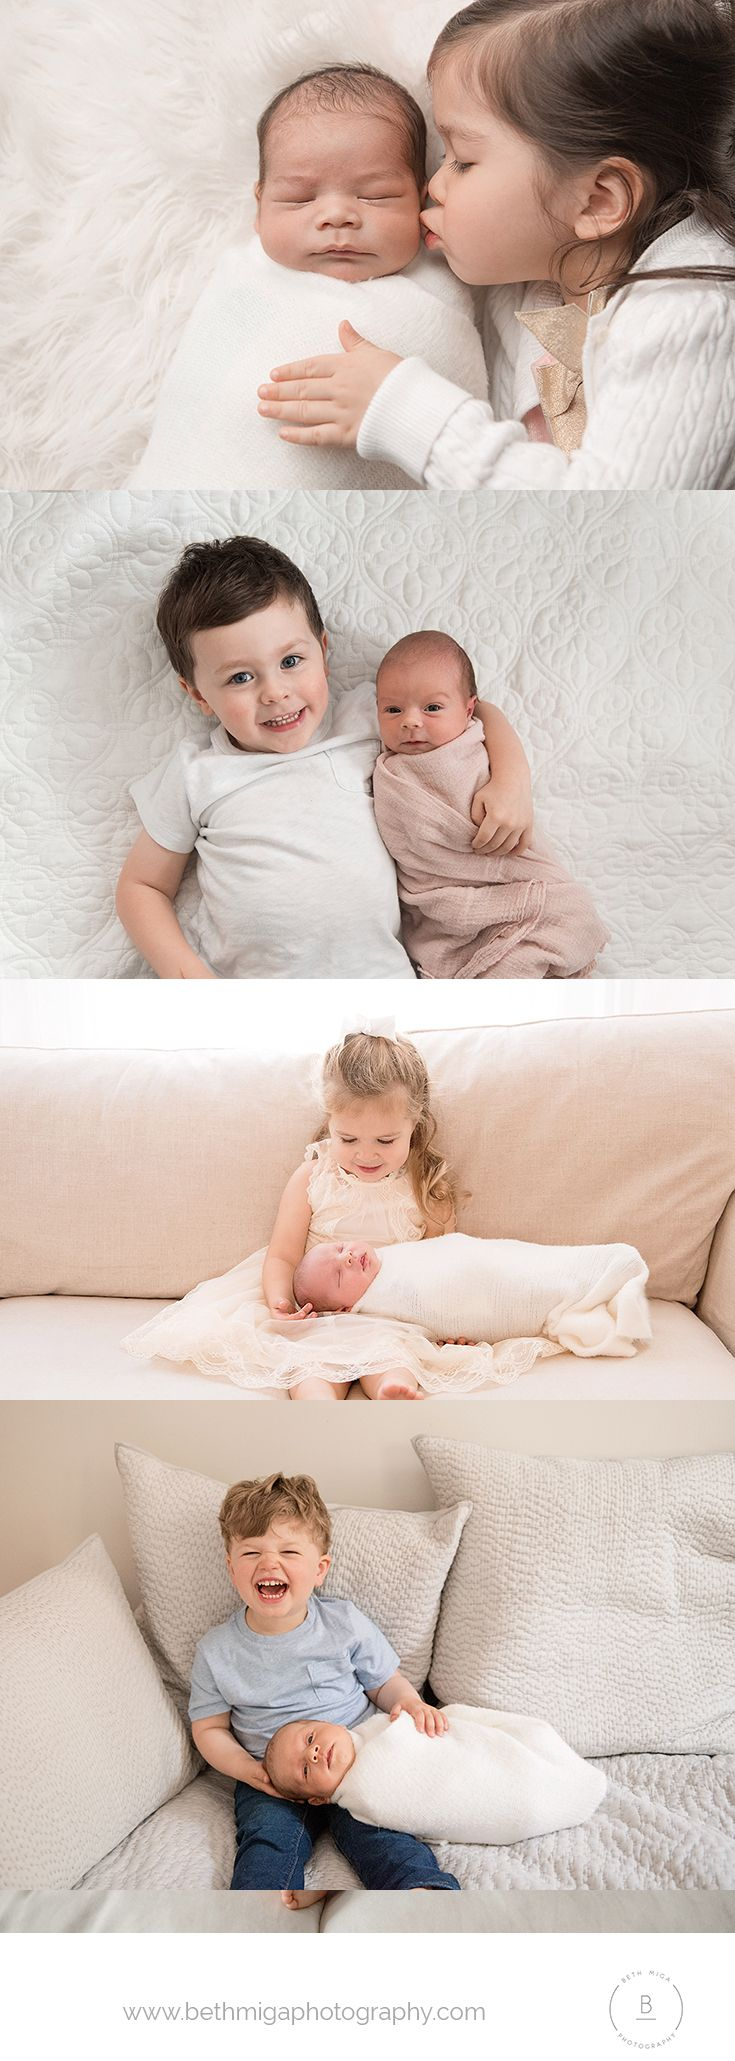 newborn and sibling photo ideas | boston newborn photographer | newborn with siblings | lifestyle newborn photography | newborn with sibling photo inspiration